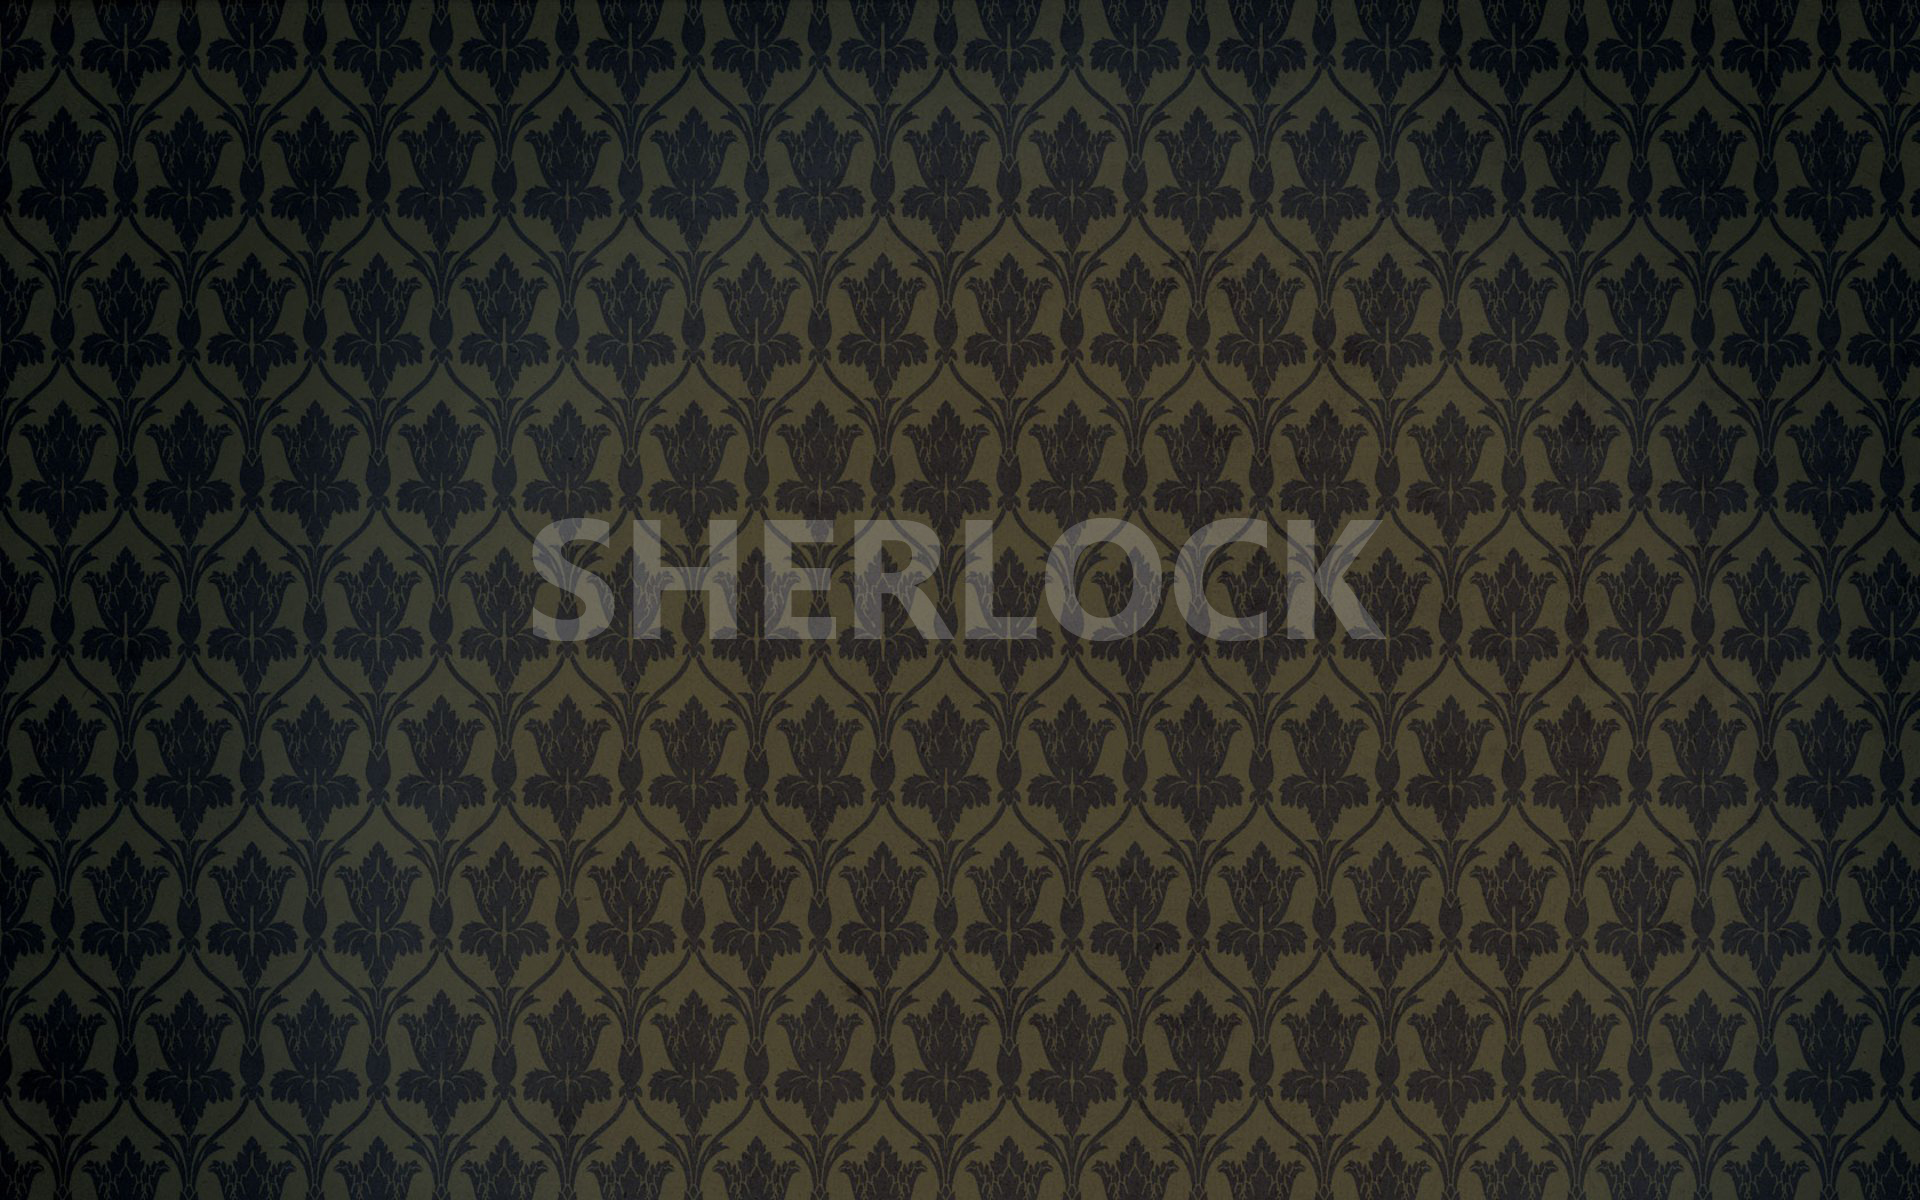 Sherlock-wallpapers-web-pattern-newres-customres-movie